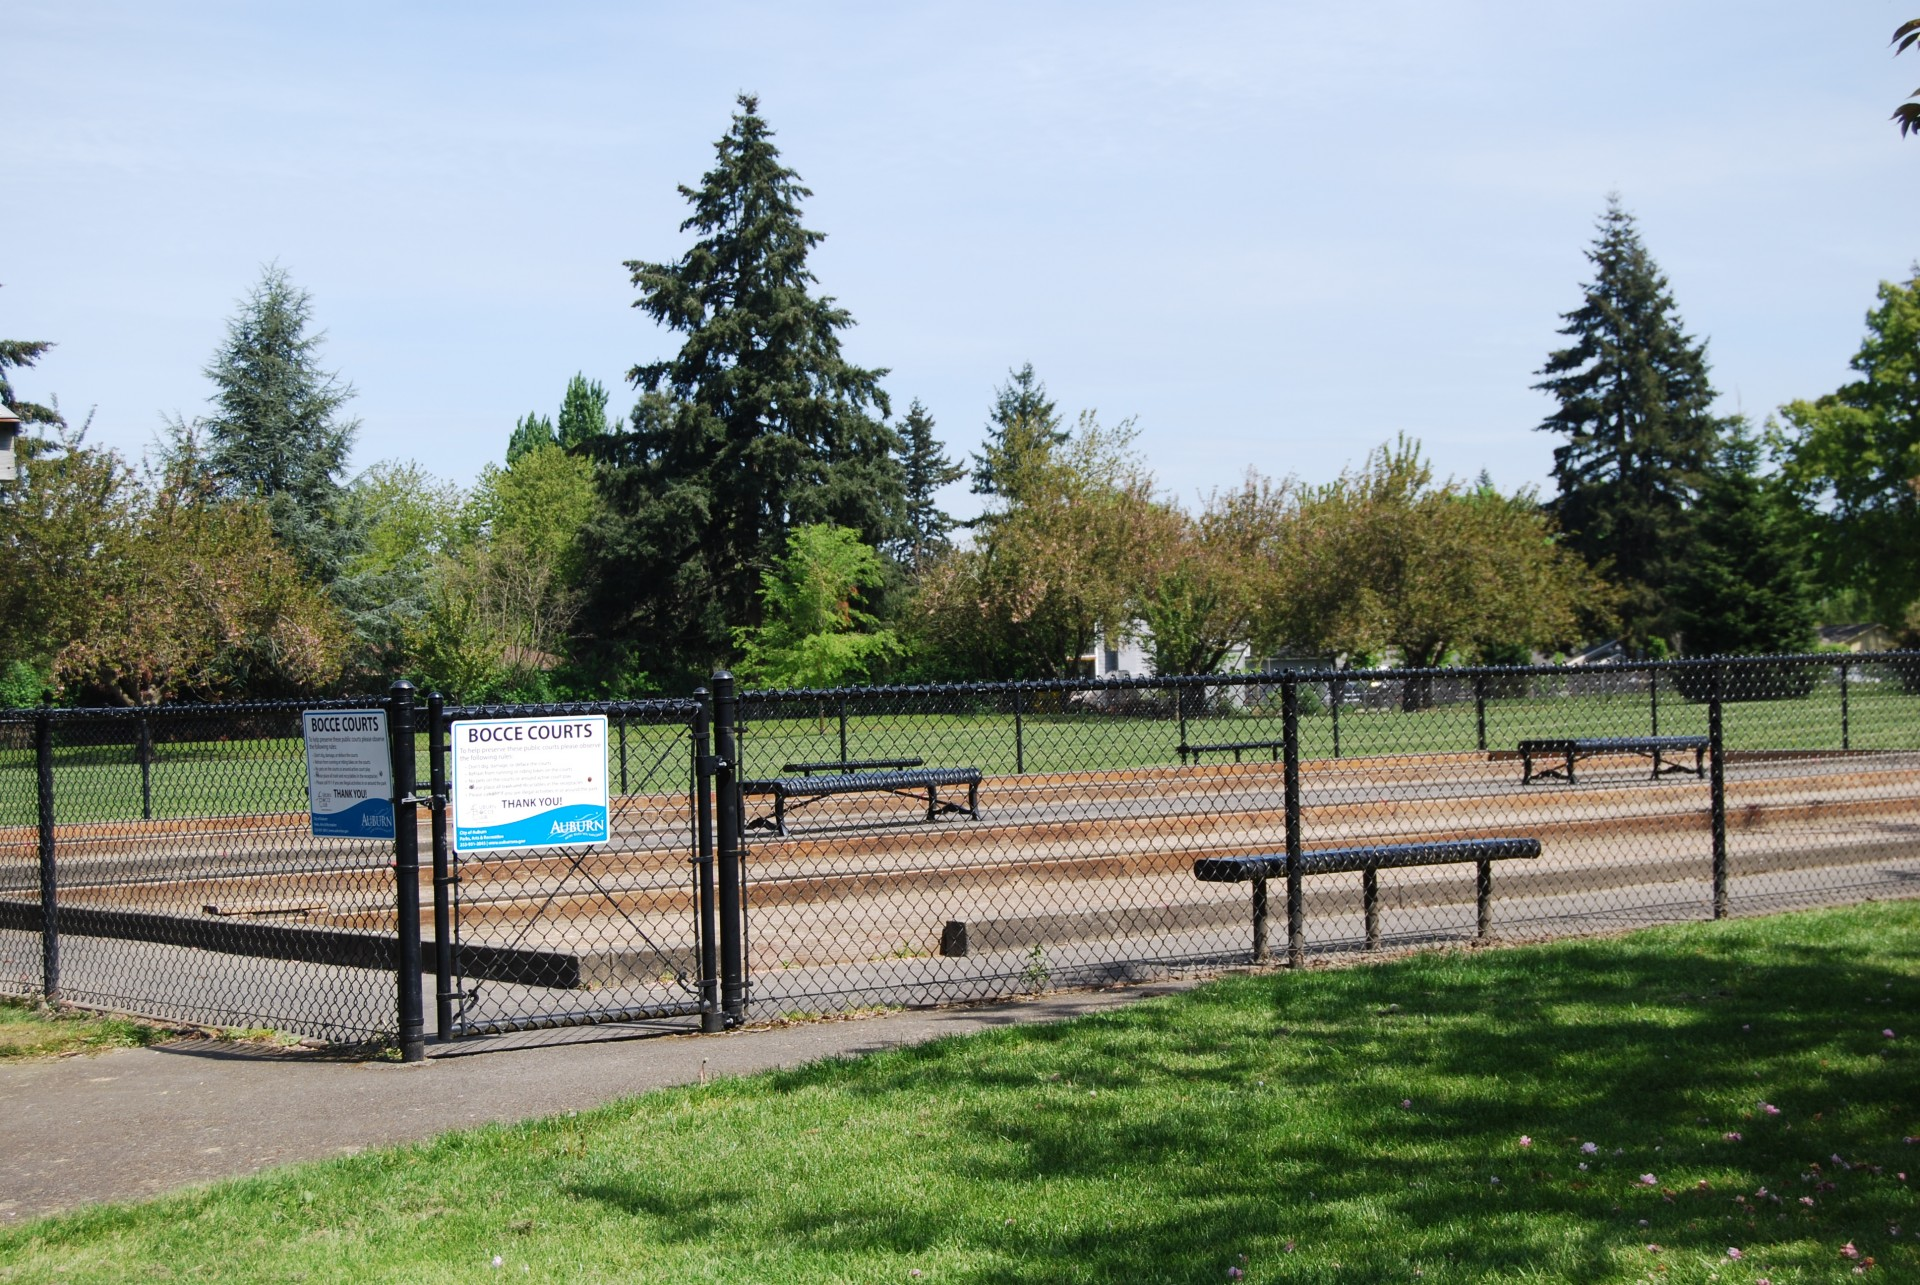 Bocce Courts at Les Gove Park